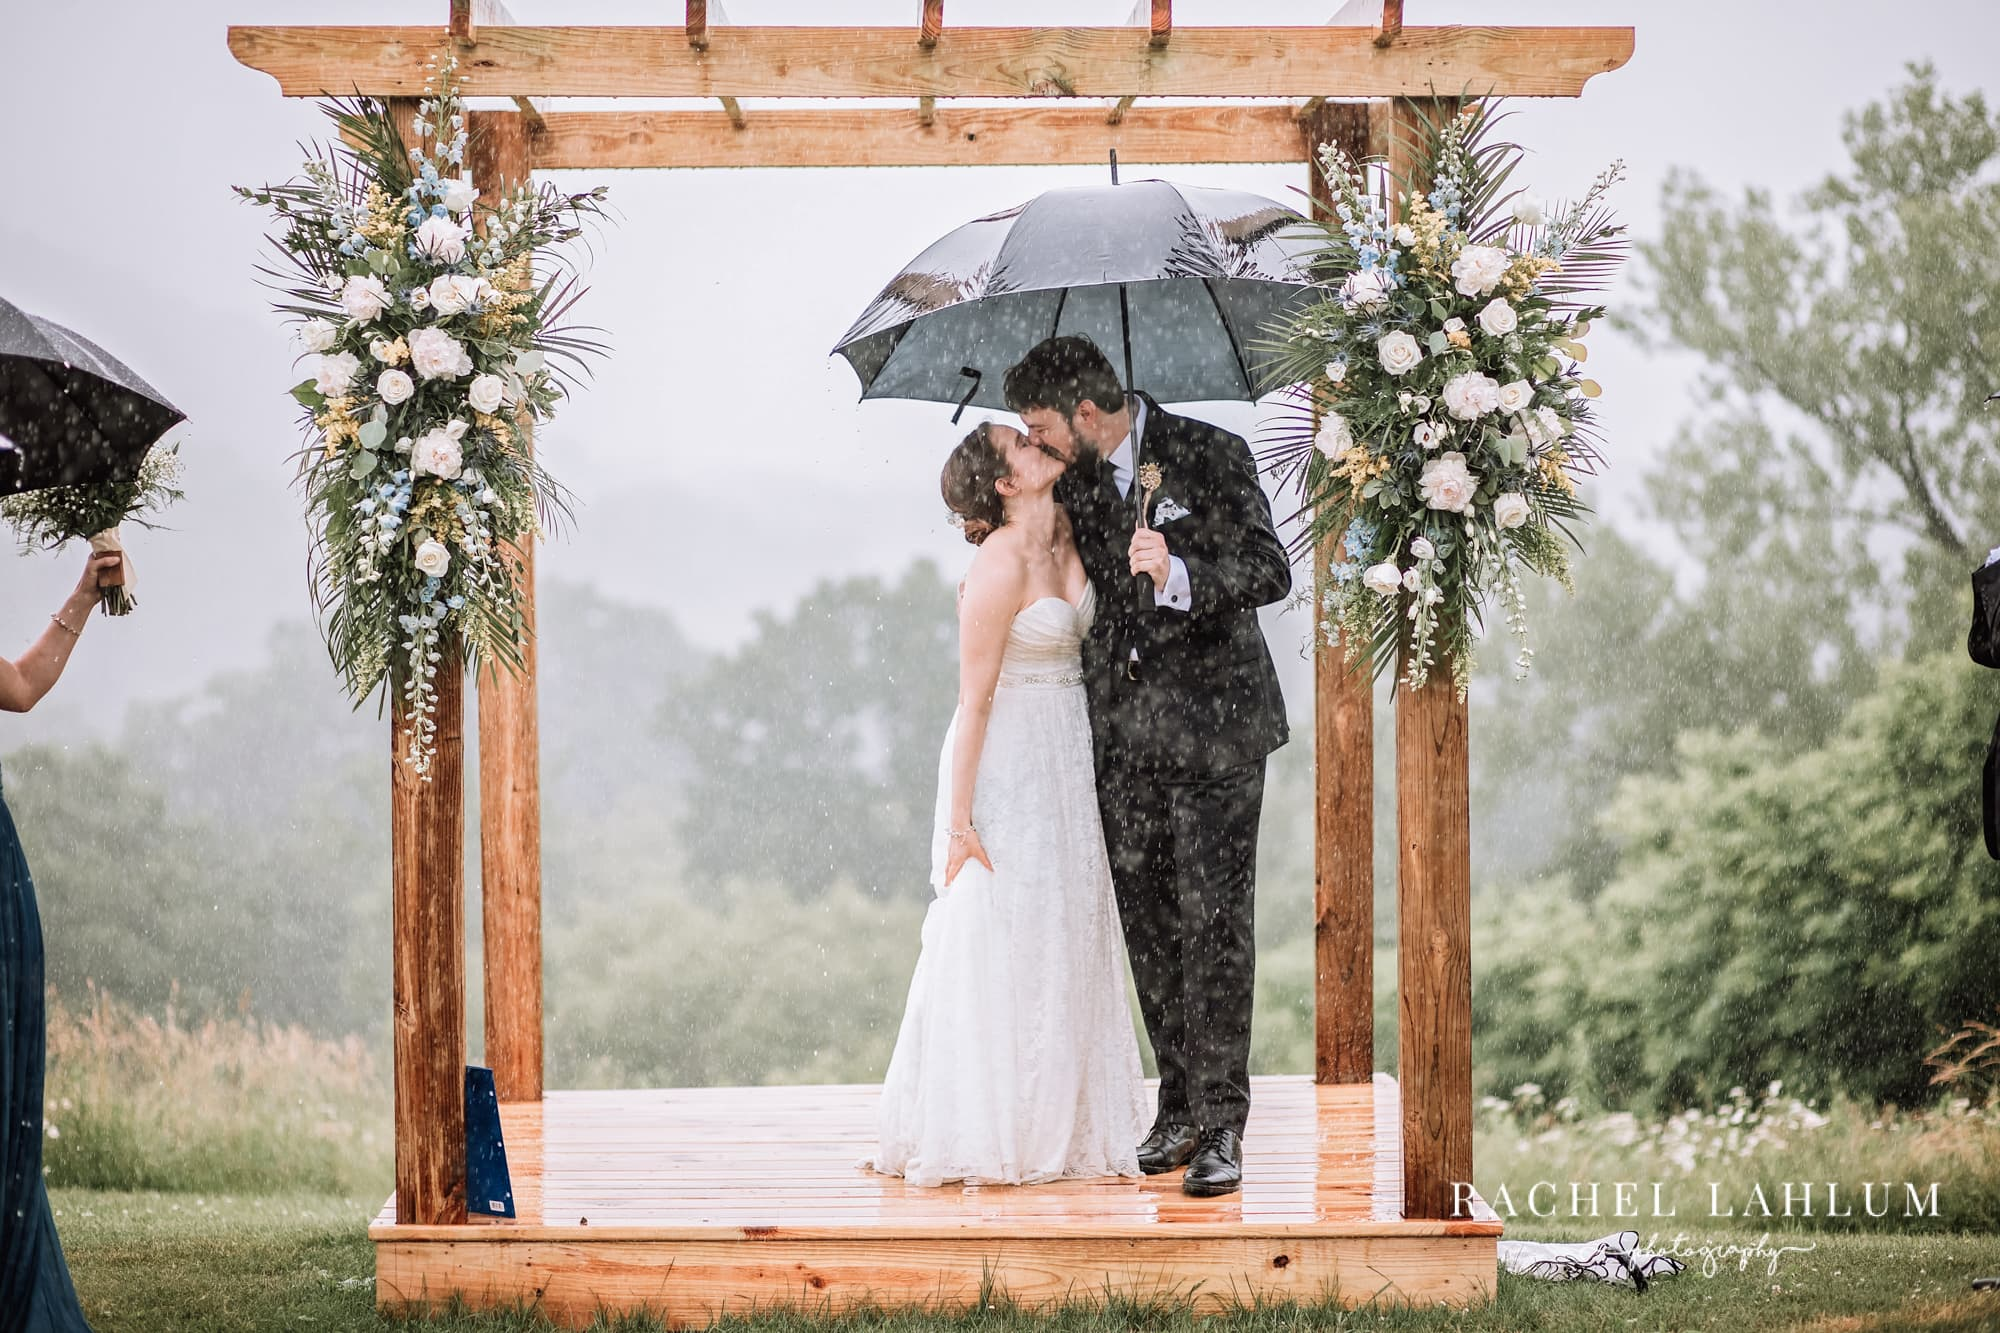 Bride and Groom kiss in the rain after exchanging vows at the Cedar Creek Barn Wedding Venue in Winona.